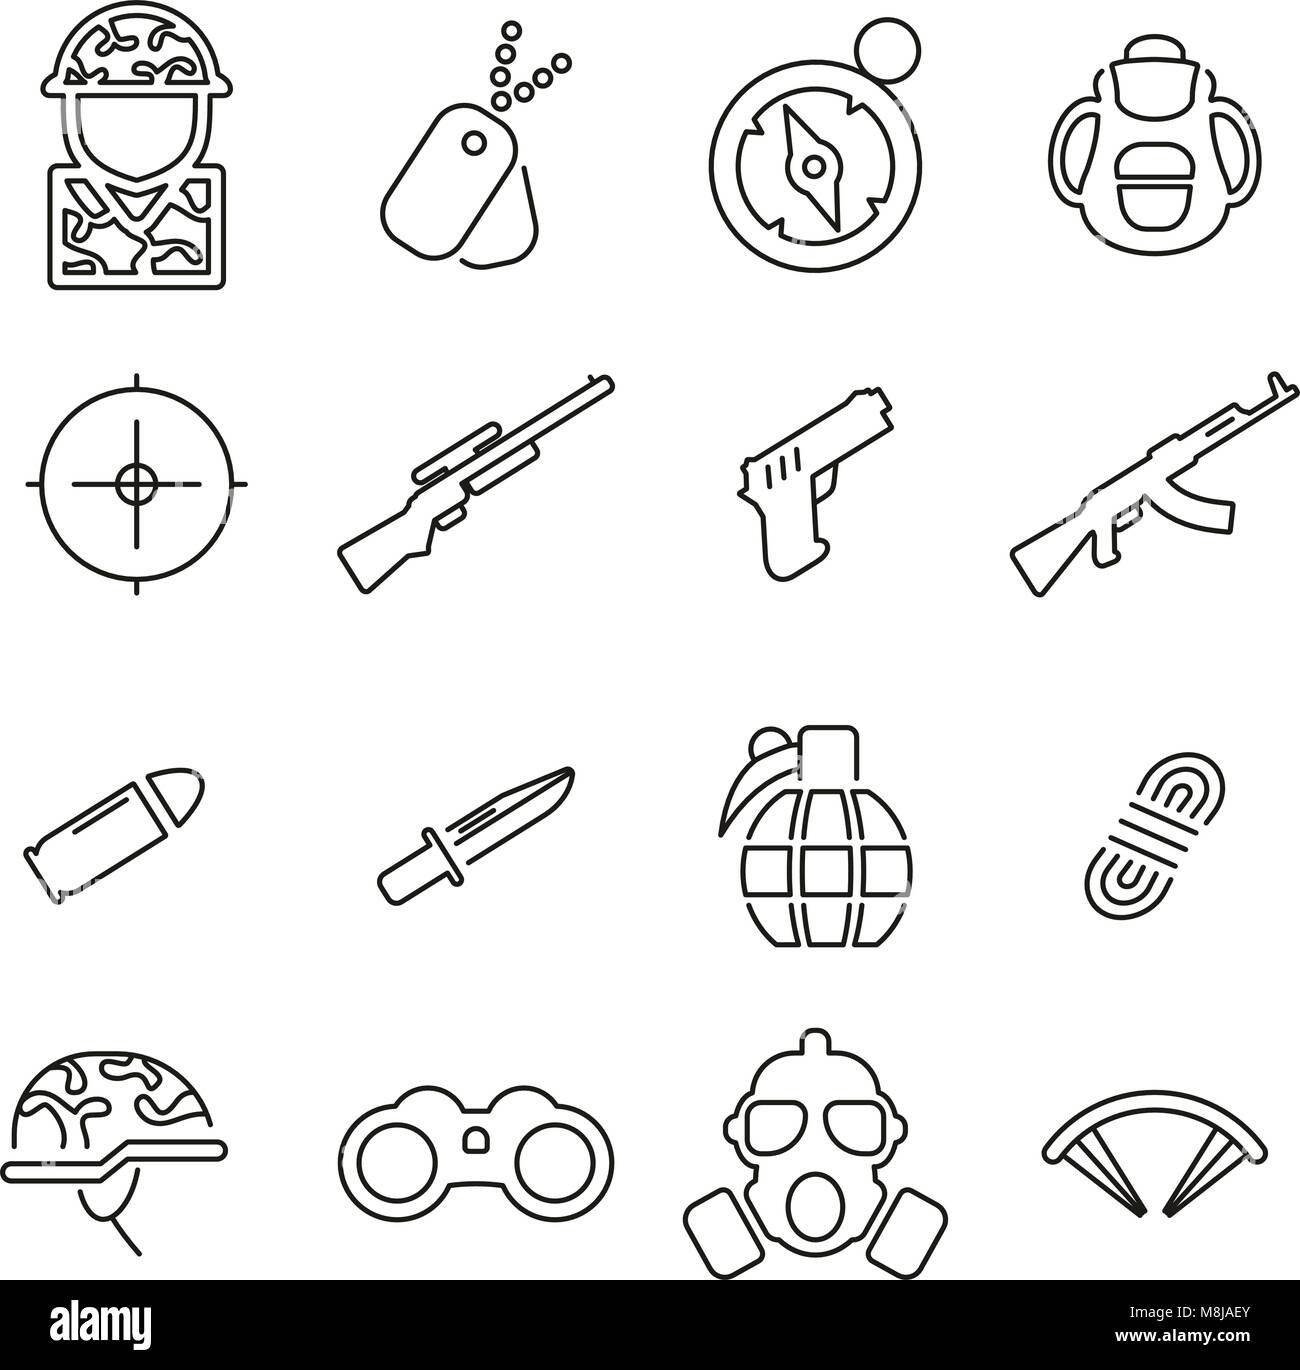 Commandos or Special Forces Army Unit Icons Thin Line Vector Illustration Set - Stock Vector